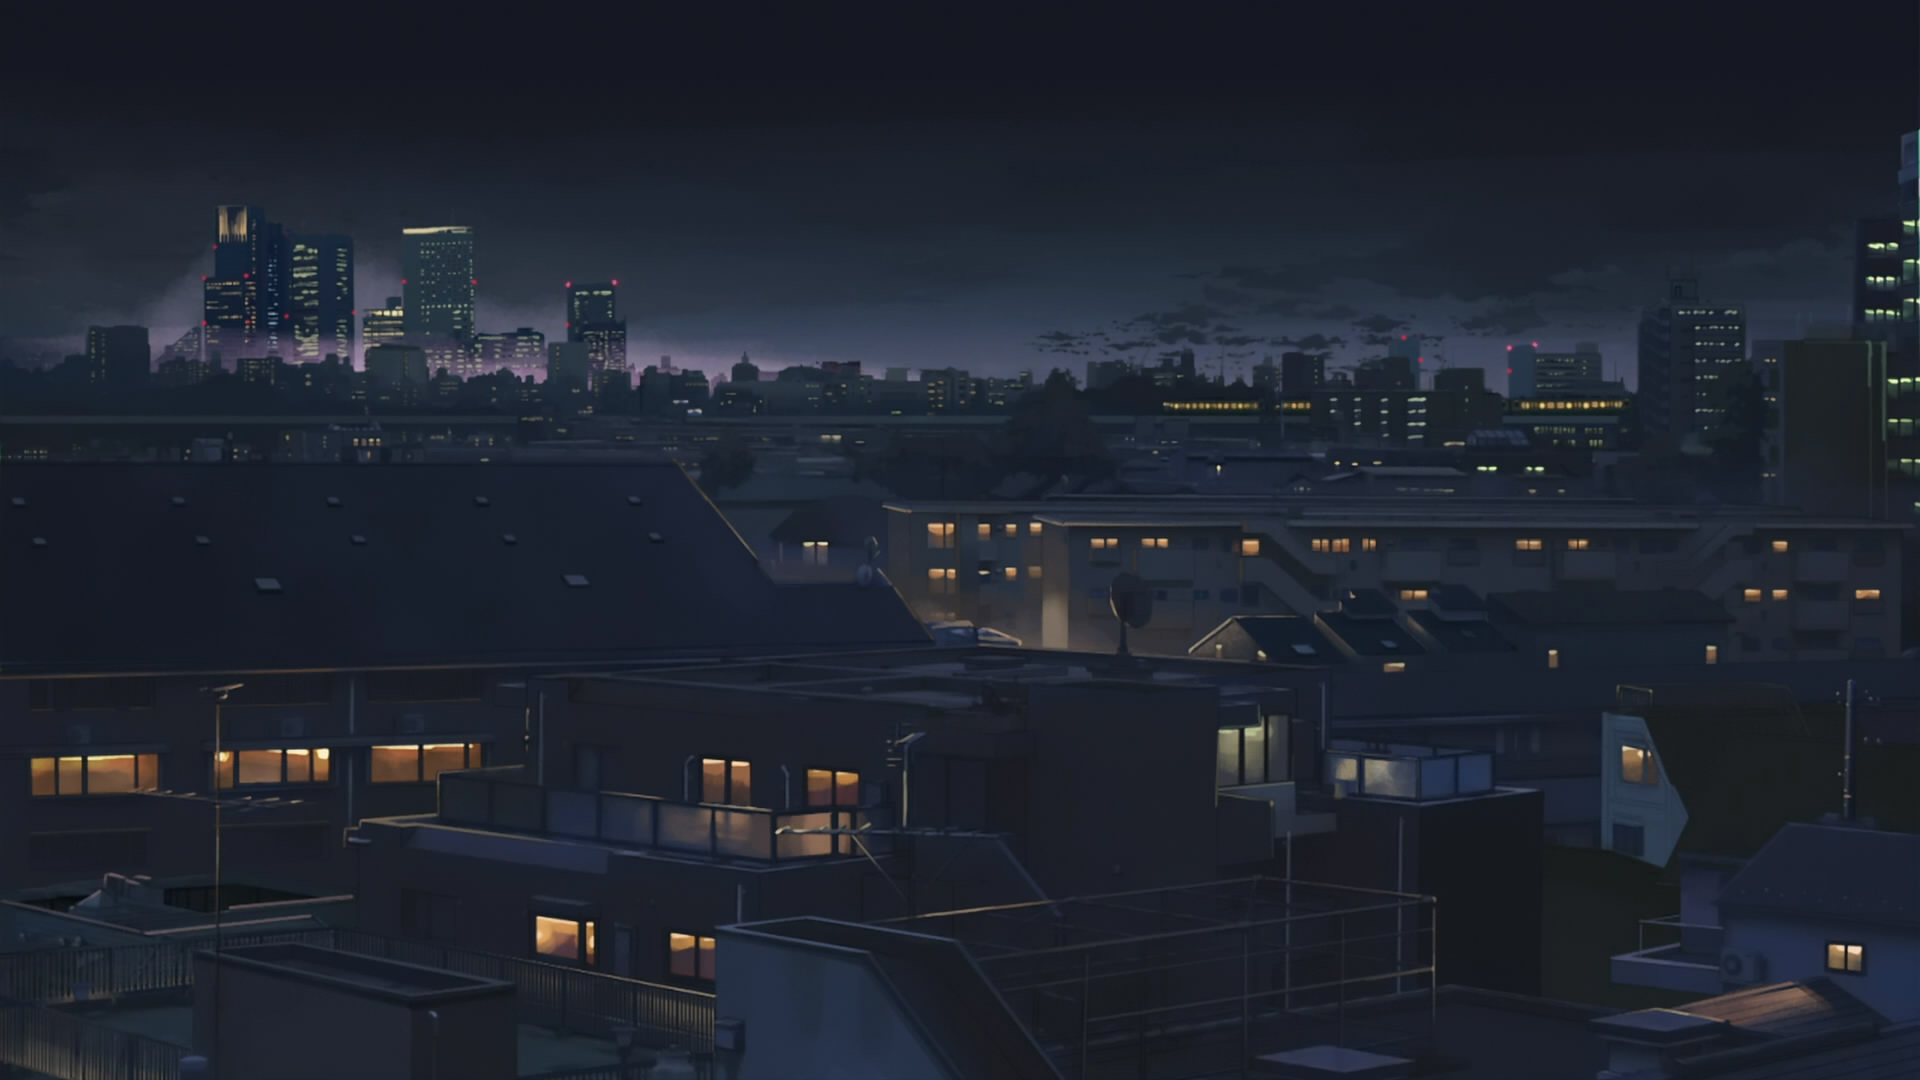 anime city desktop wallpaper 50839